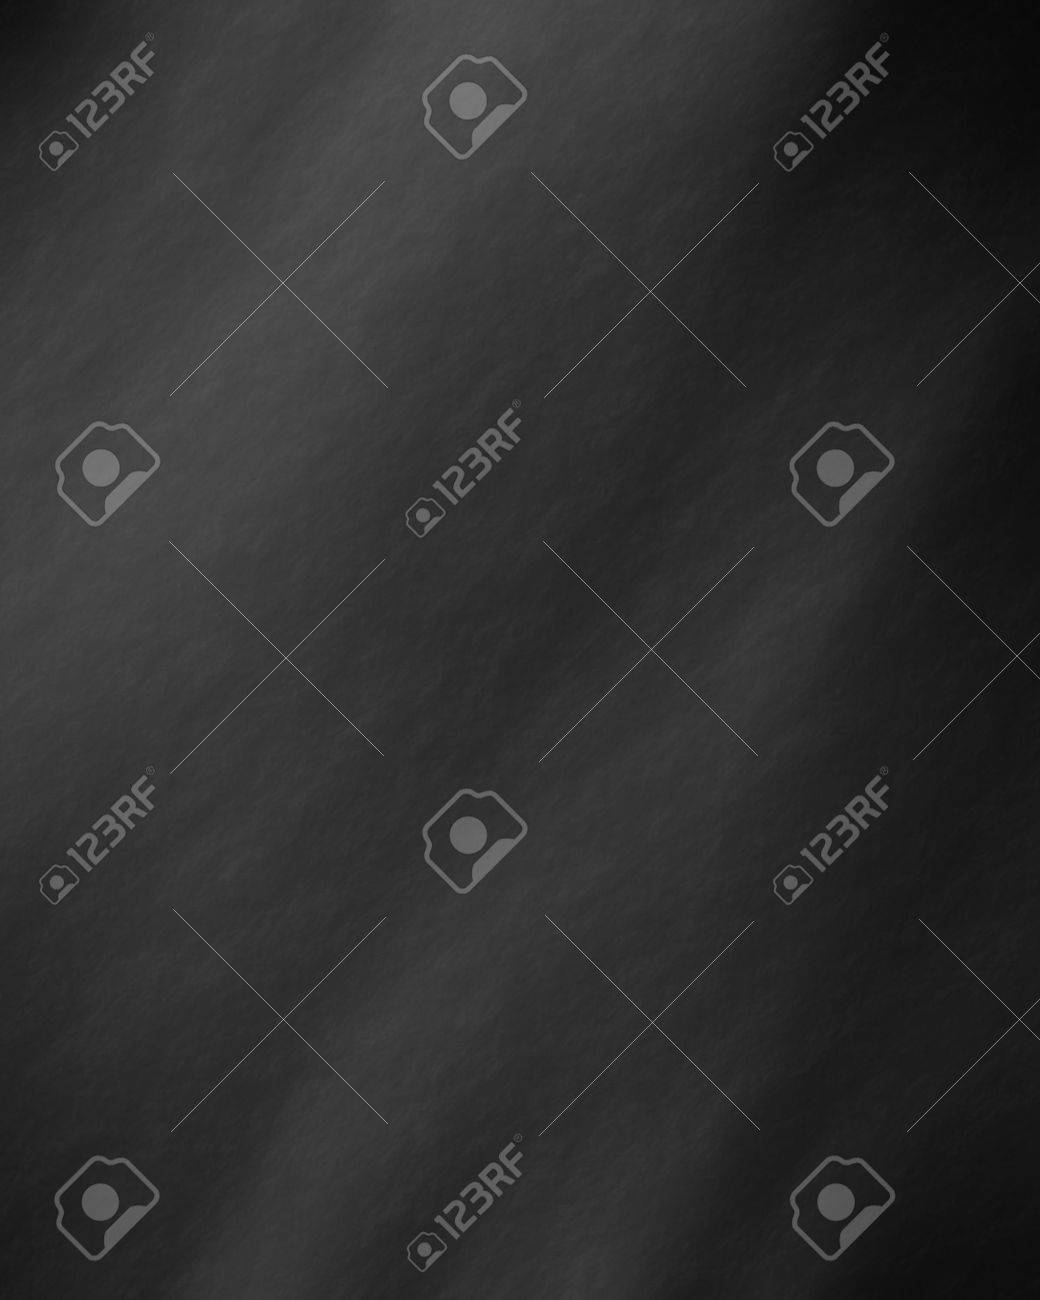 Black background texture with smooth lines and soft highlights Stock Photo - 14670021